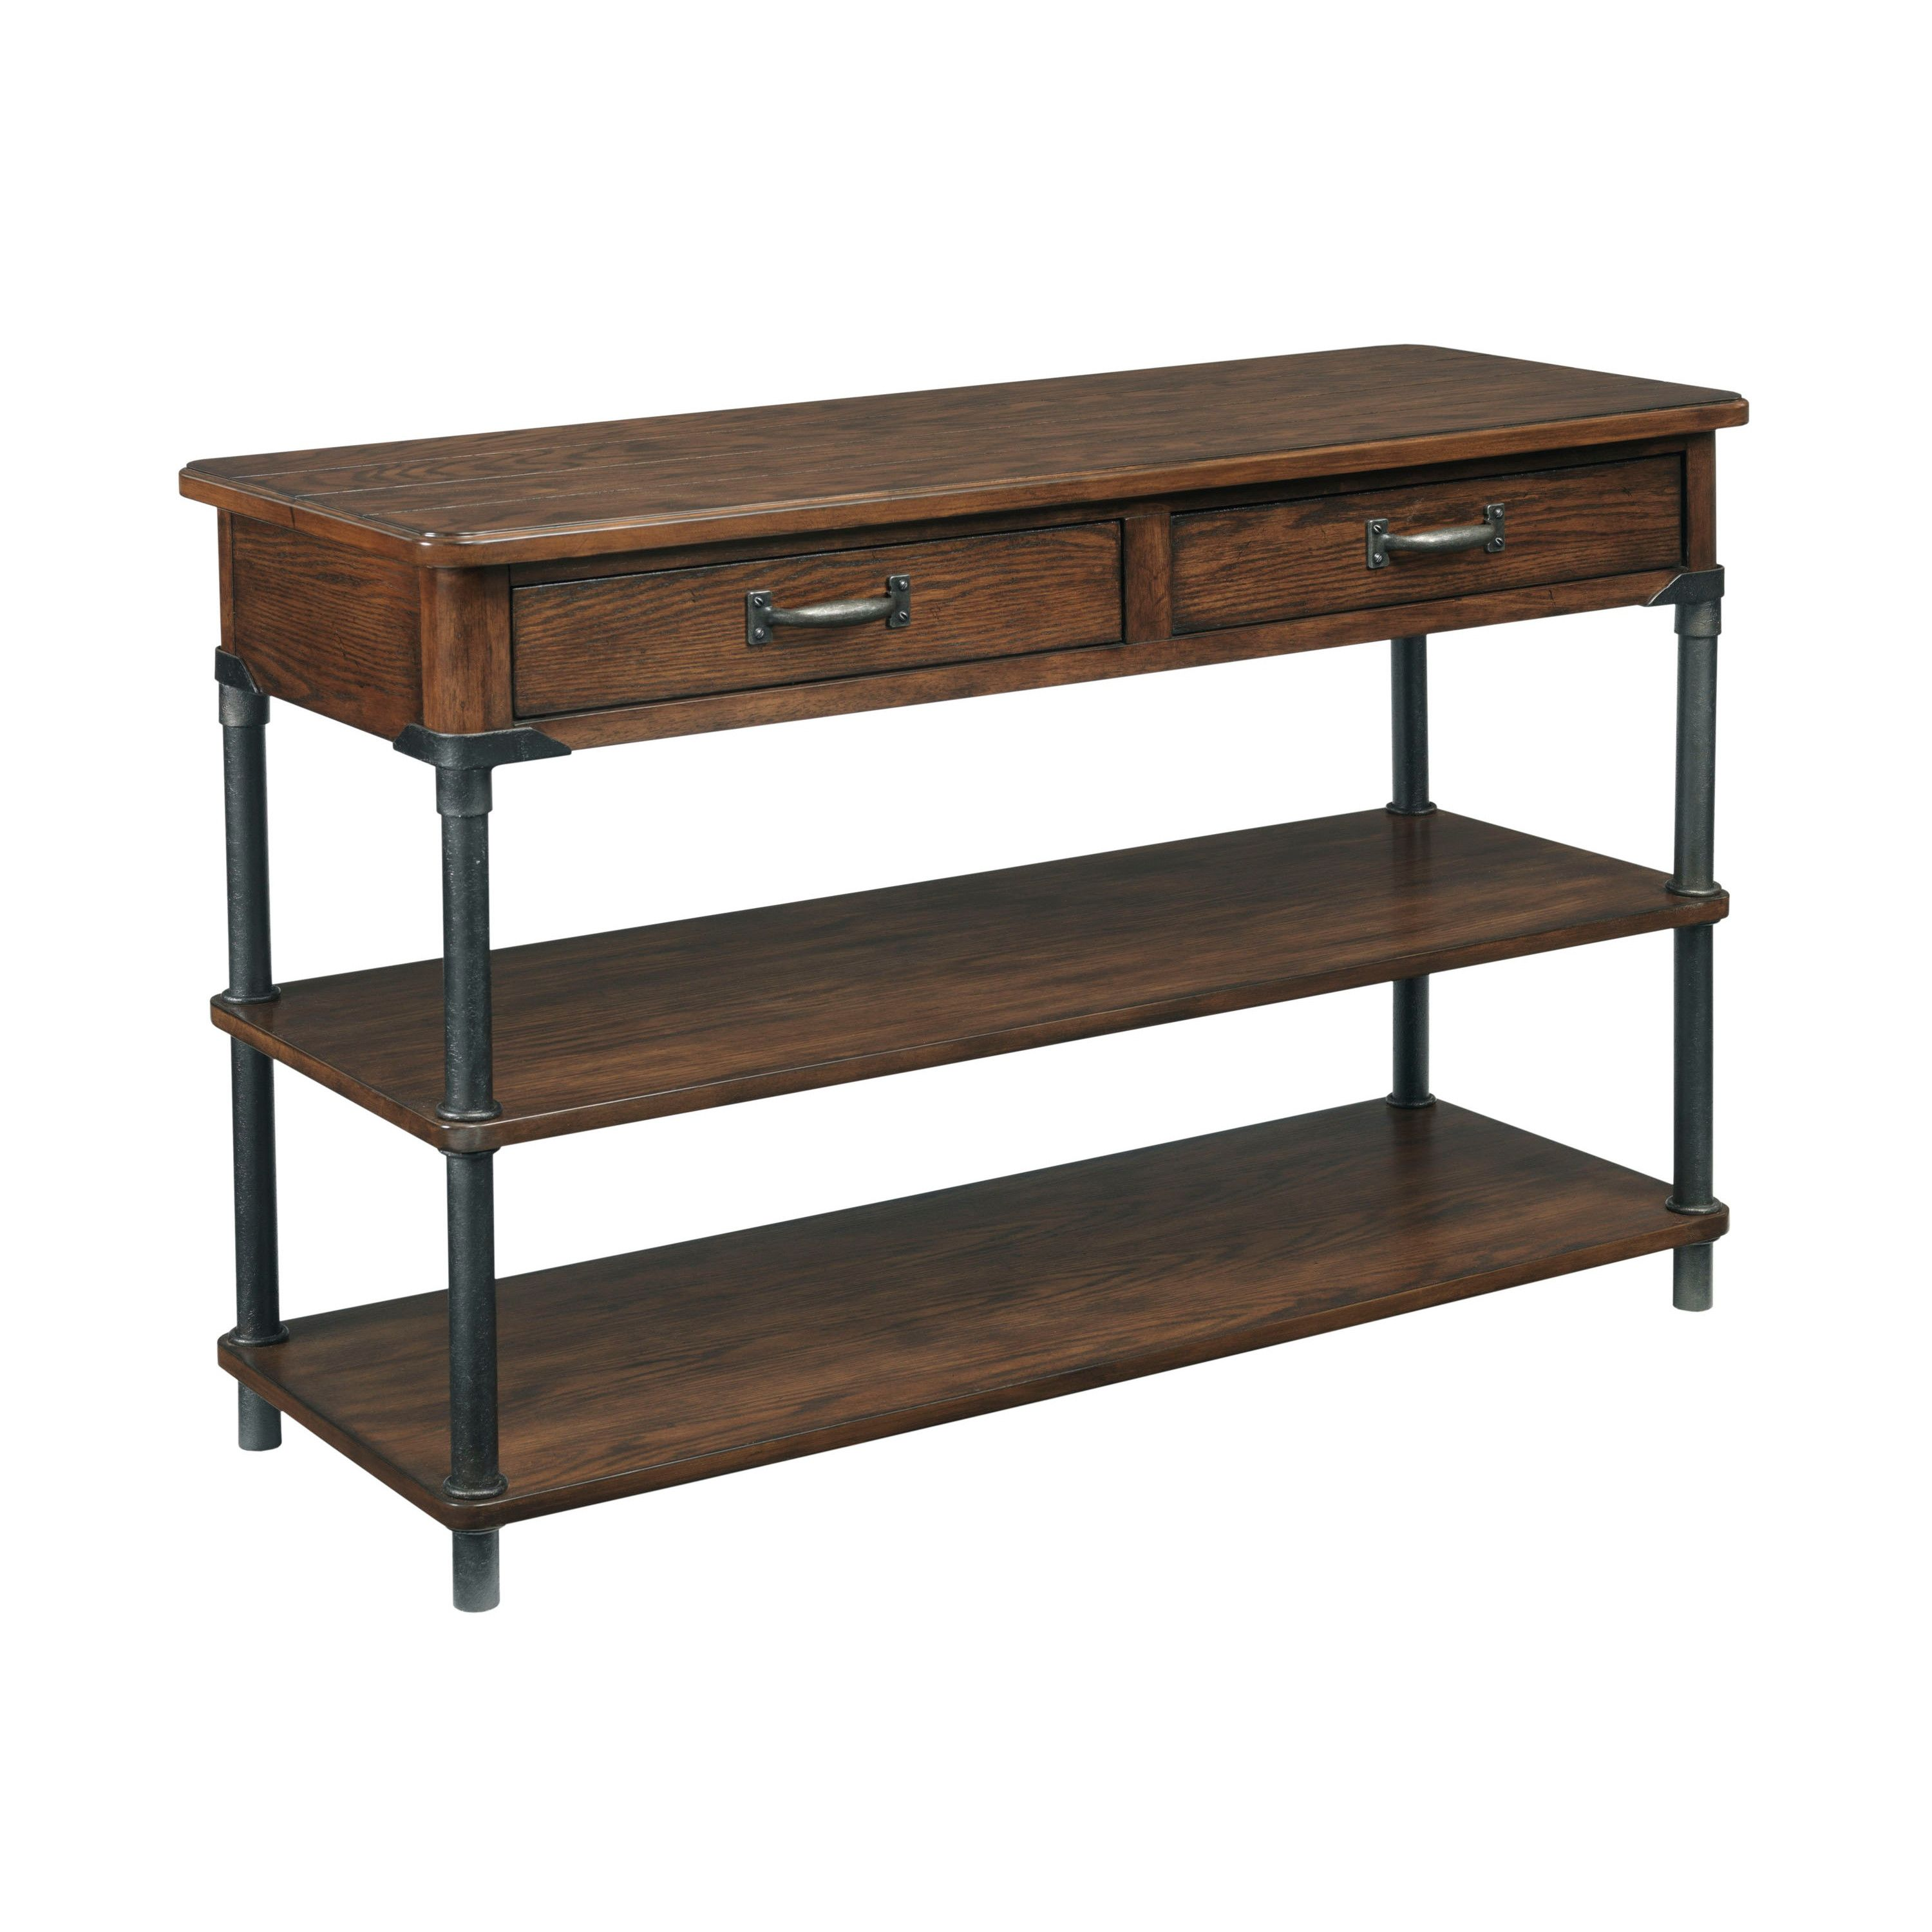 Broyhill saluda console table office pinterest console the sofa table is a casual design with a slightly distressed warm oak finish on rubber wood solids and oak veneers gunmetal finished metal accents and geotapseo Choice Image